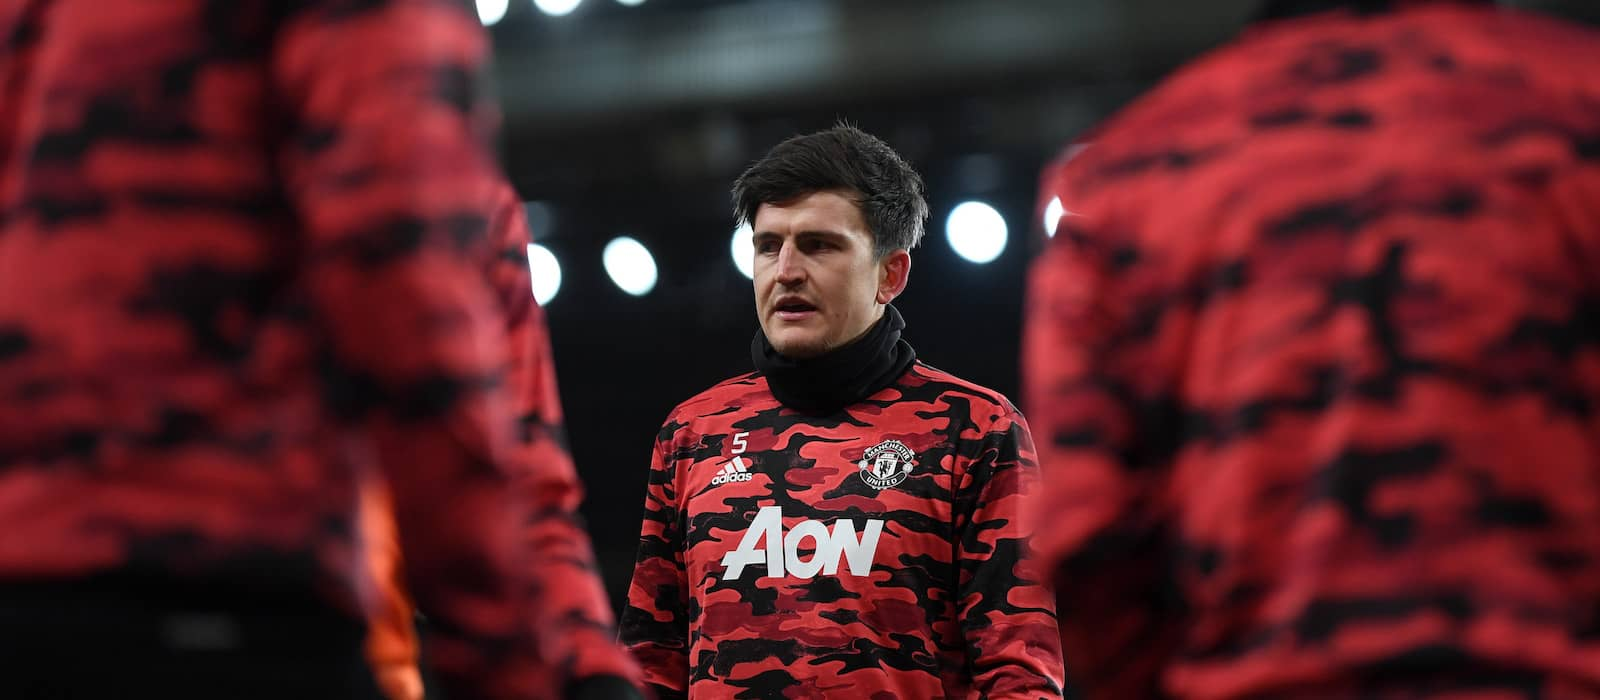 Gary Neville admits he thought Harry Maguire's partner would be this player